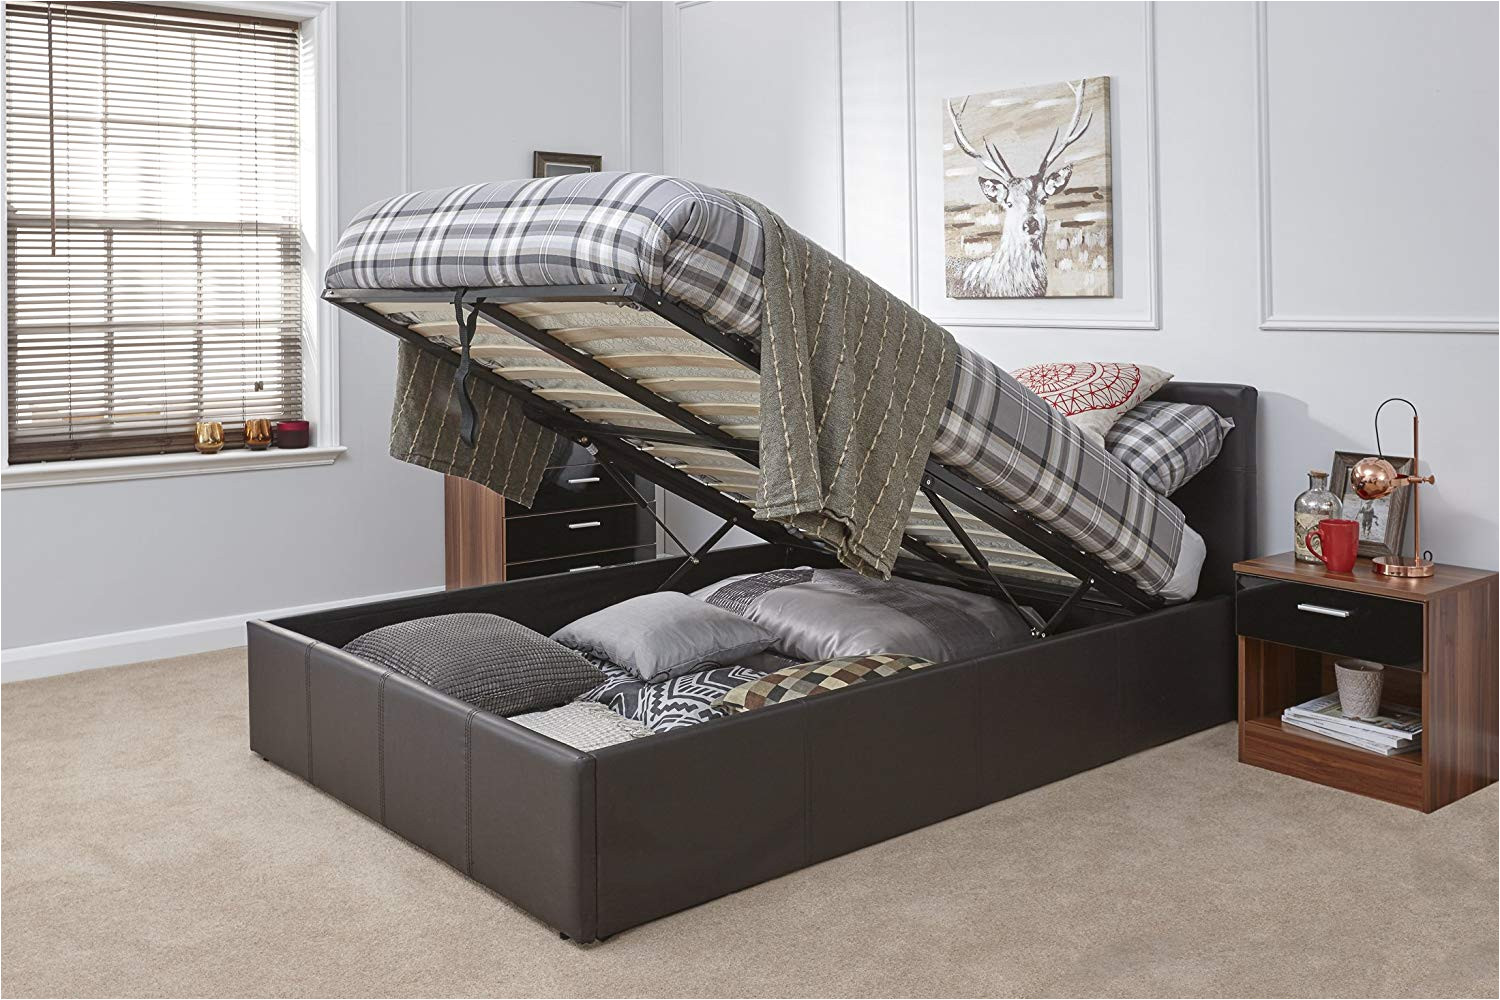 caspian ottoman gas lift up storage bed brown 4ft6 double amazon co uk kitchen home